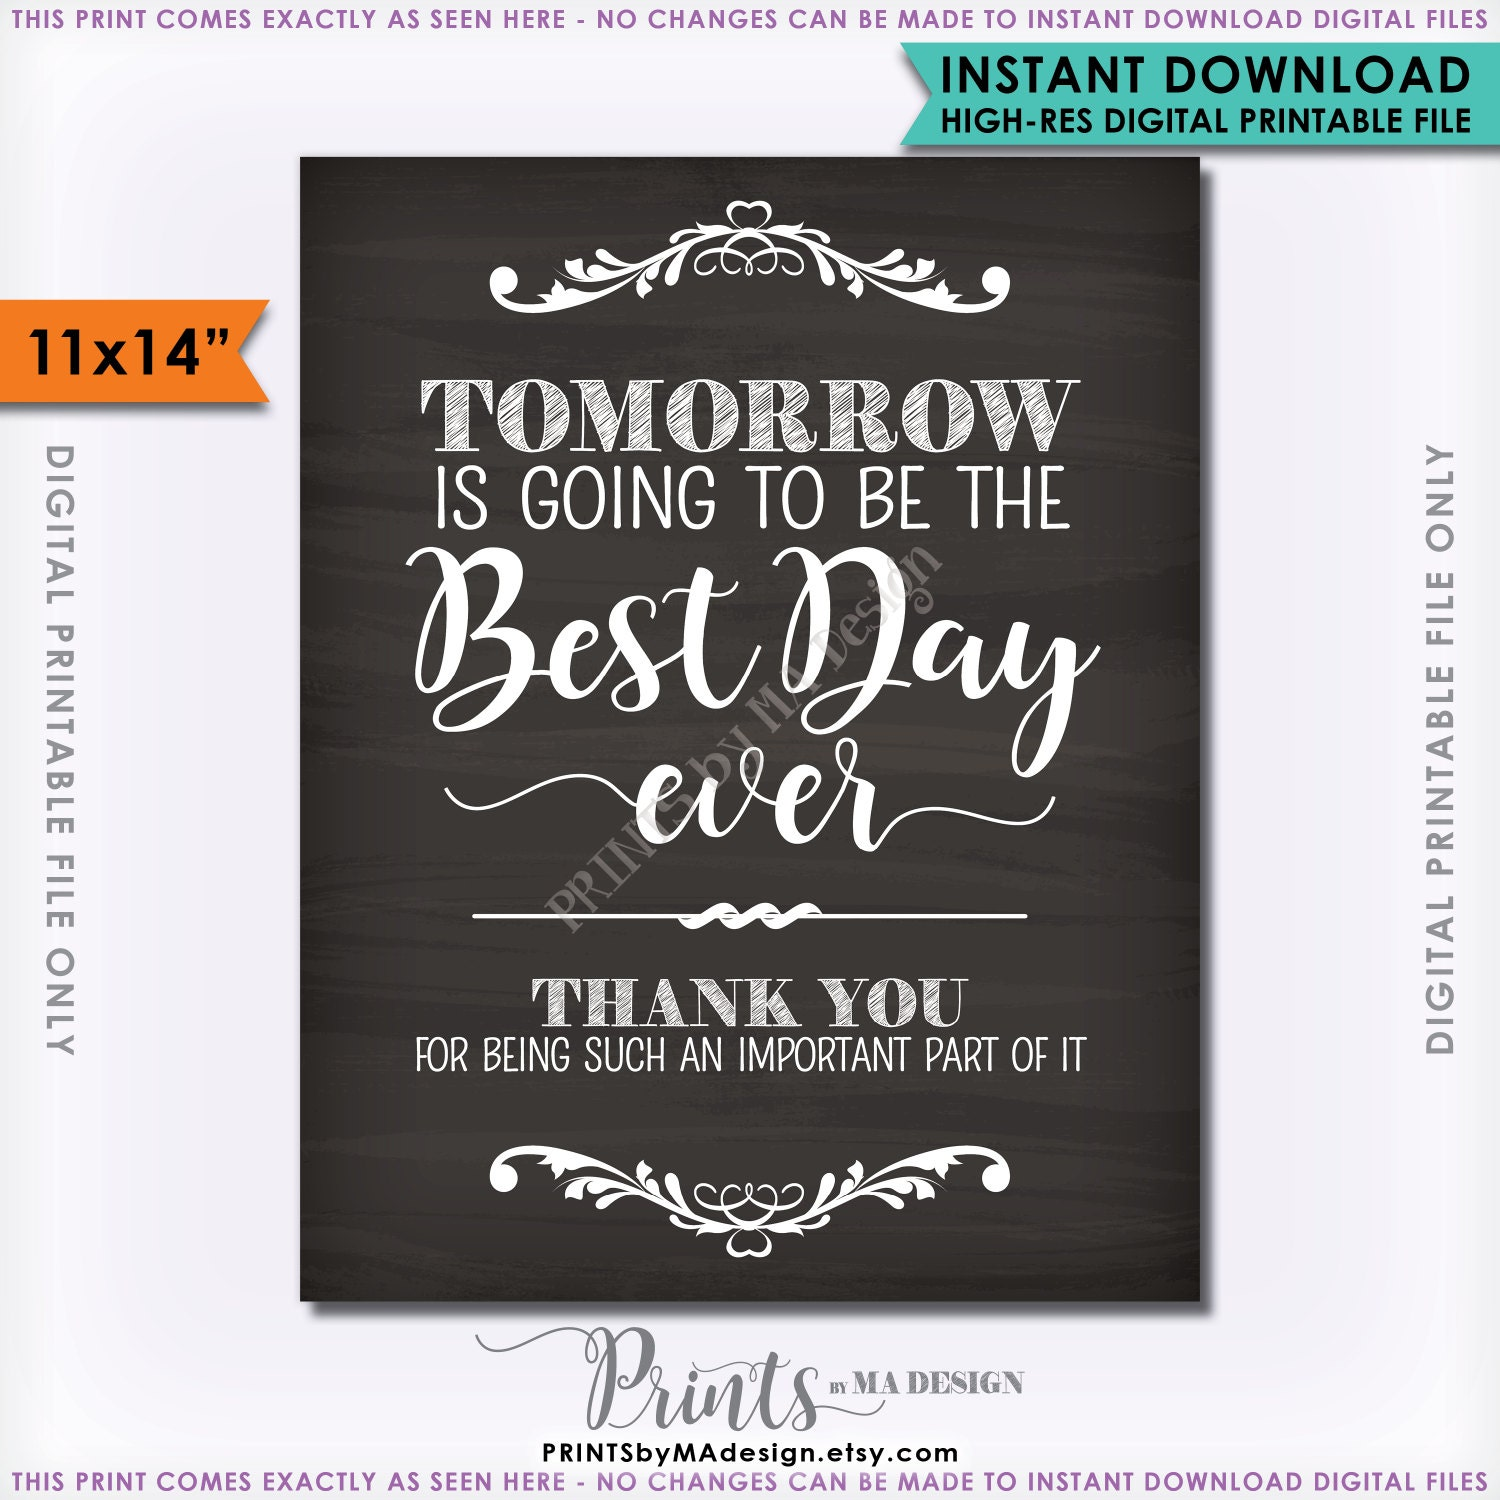 best day ever download